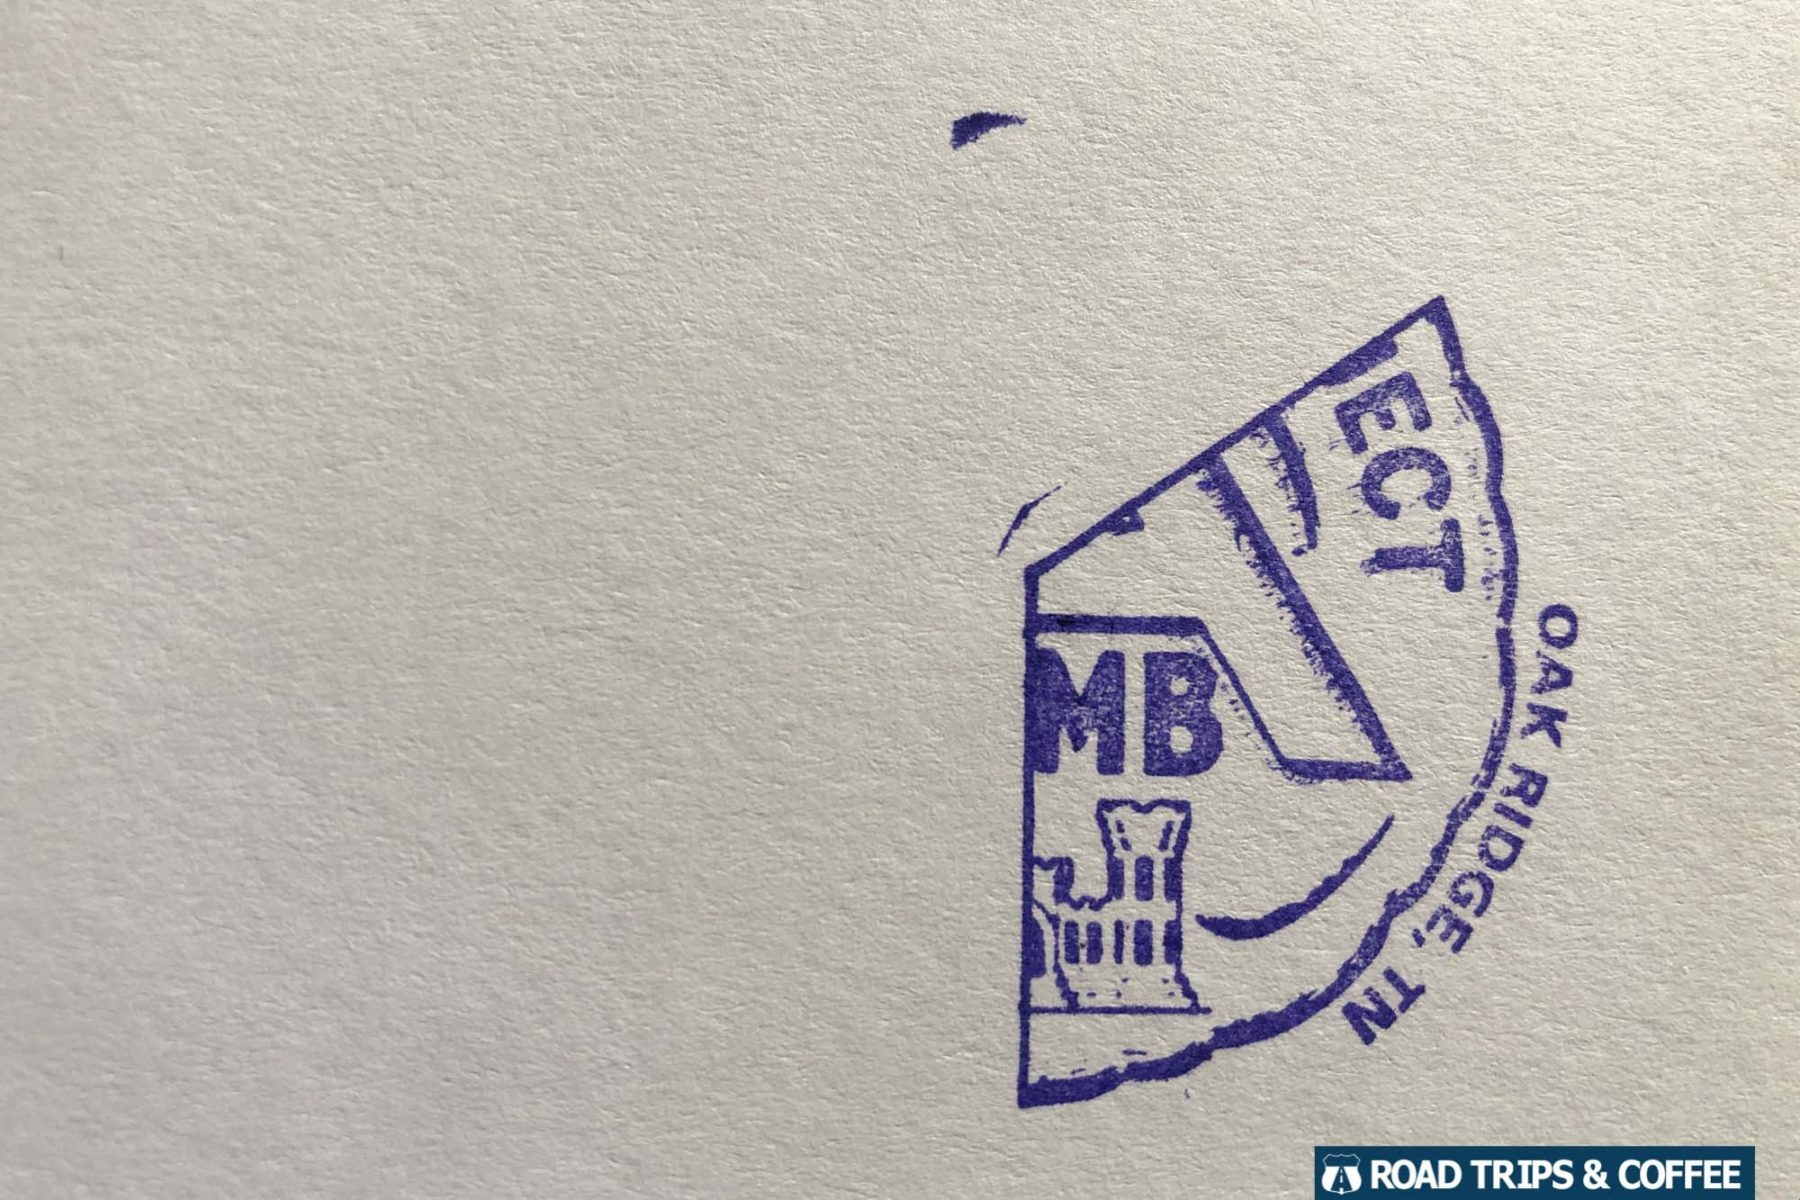 One third of the complete National Park Passport cancellation stamp, this one from the Oak Ridge site of the Manhattan Project National Historical Park in Tennessee